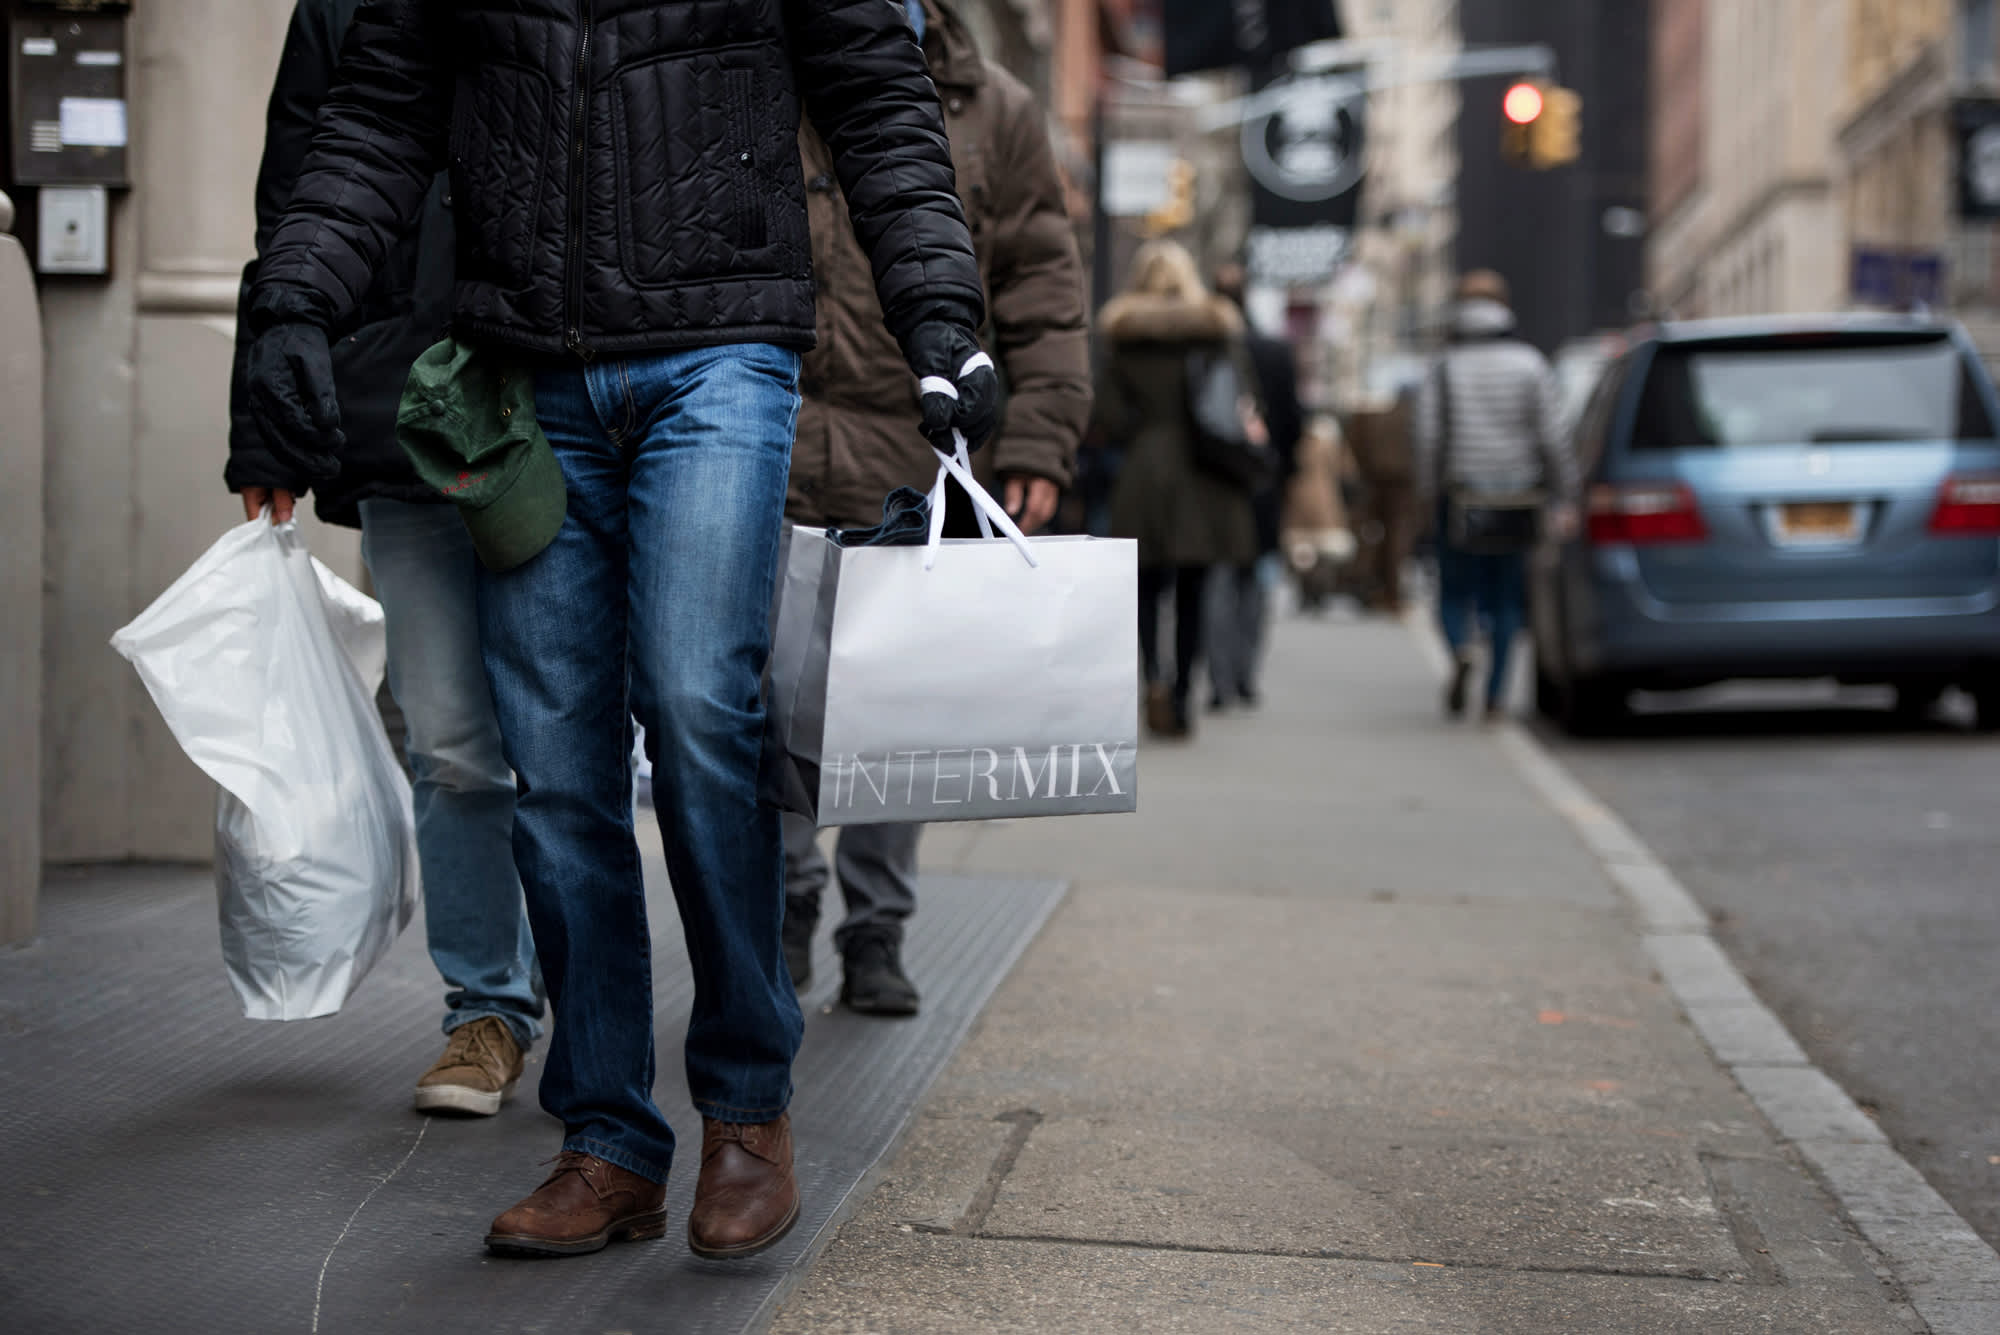 Gap to sell its Intermix business to PE firm Altamont Capital Partners